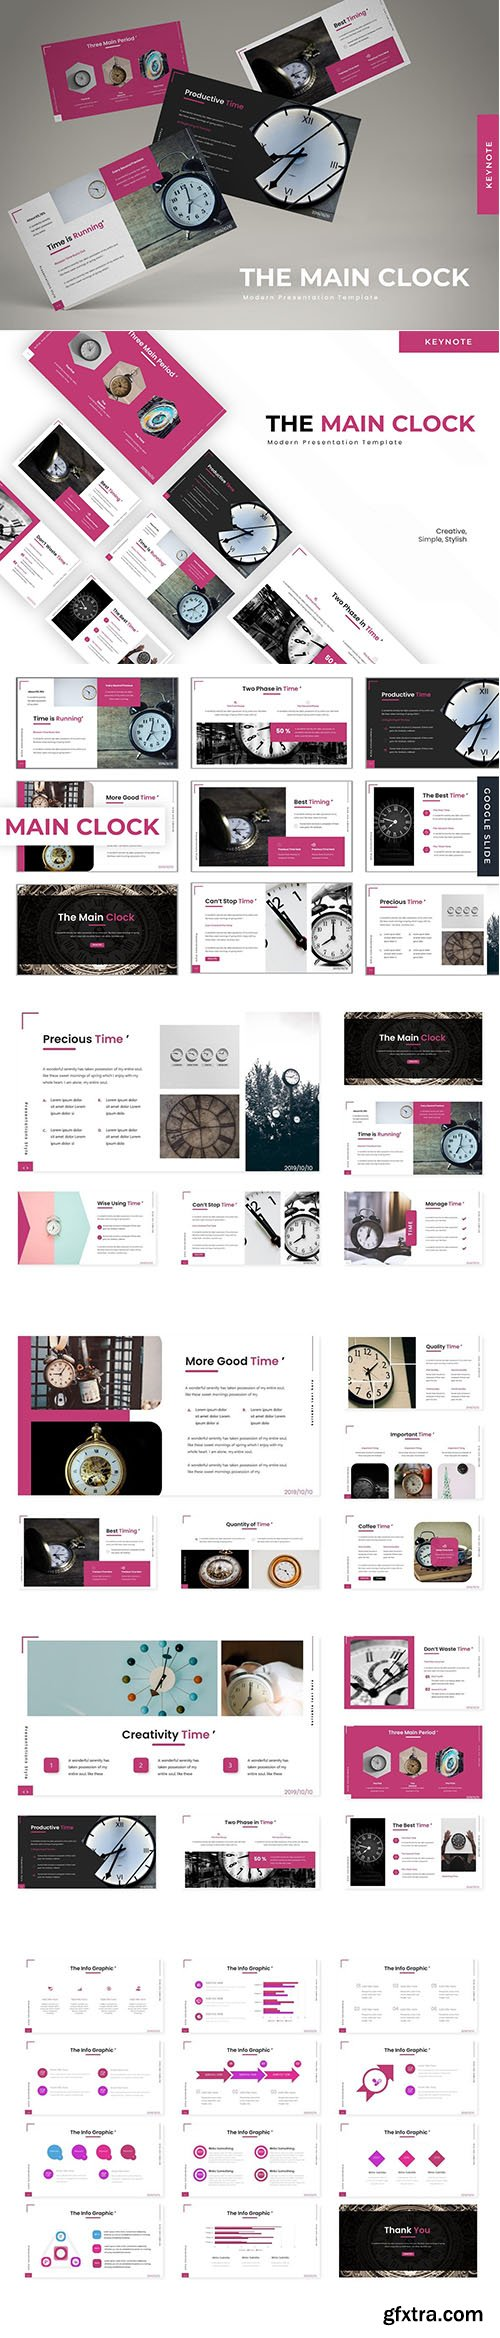 The Main Clock - Powerpoint Template, Keynote Template and Google Slide Template